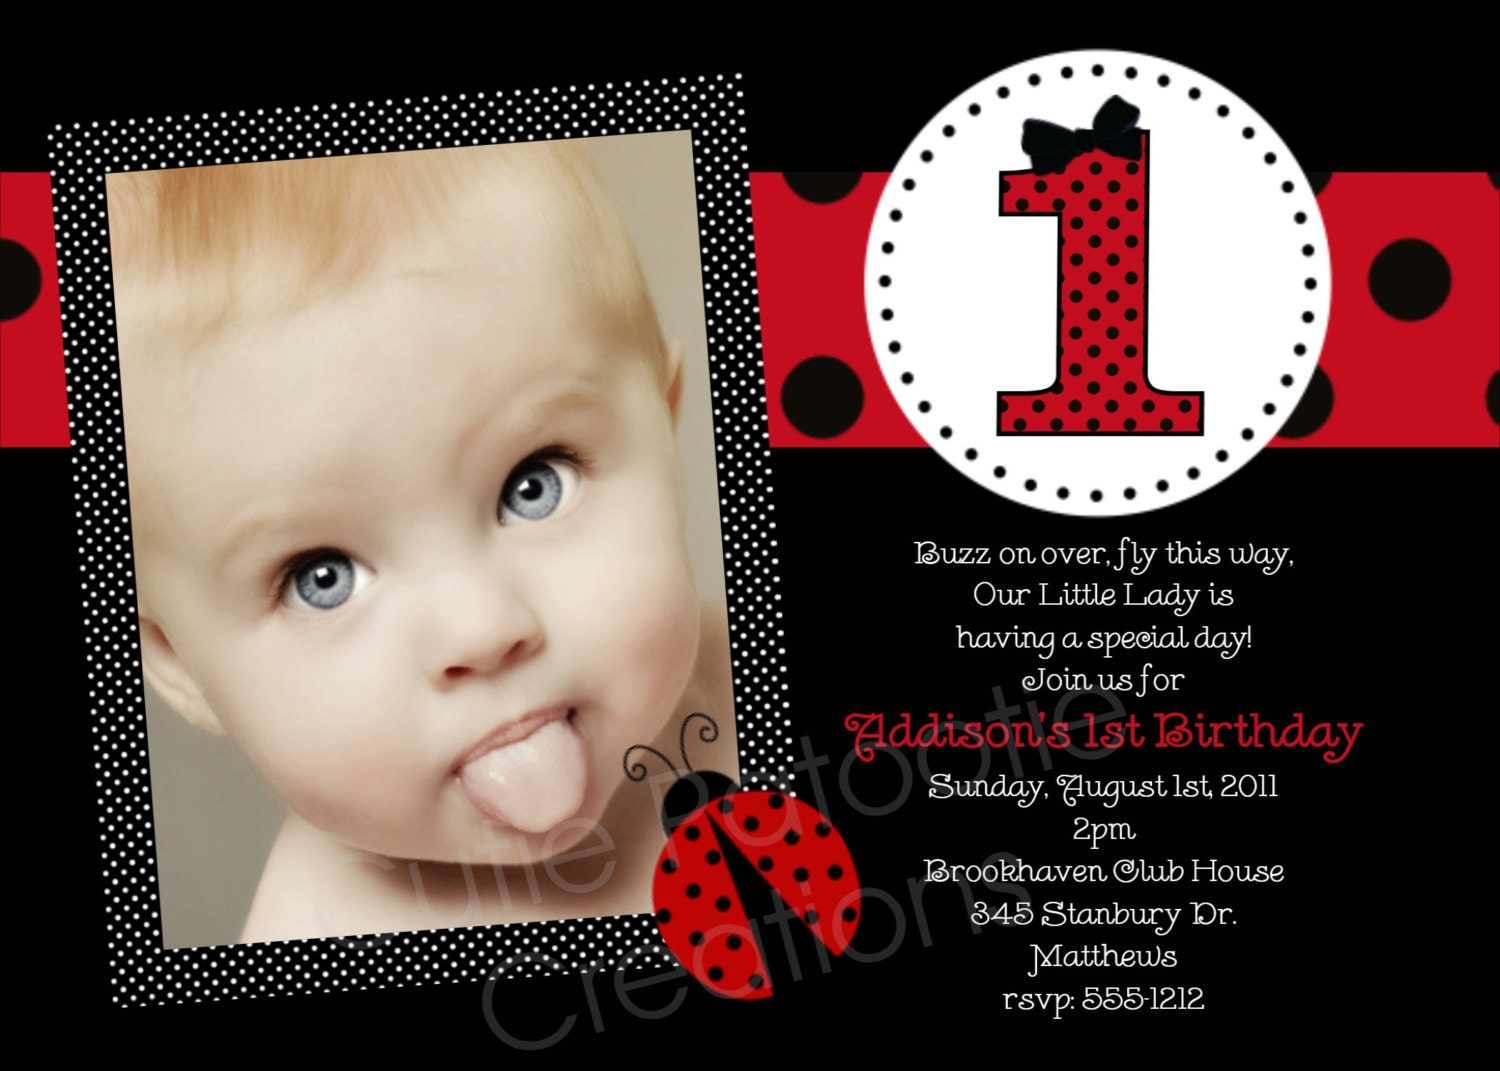 Ladybug Birthday Invitation 1st Birthday Ladybug Birthday – Ladybug Invitations 1st Birthday